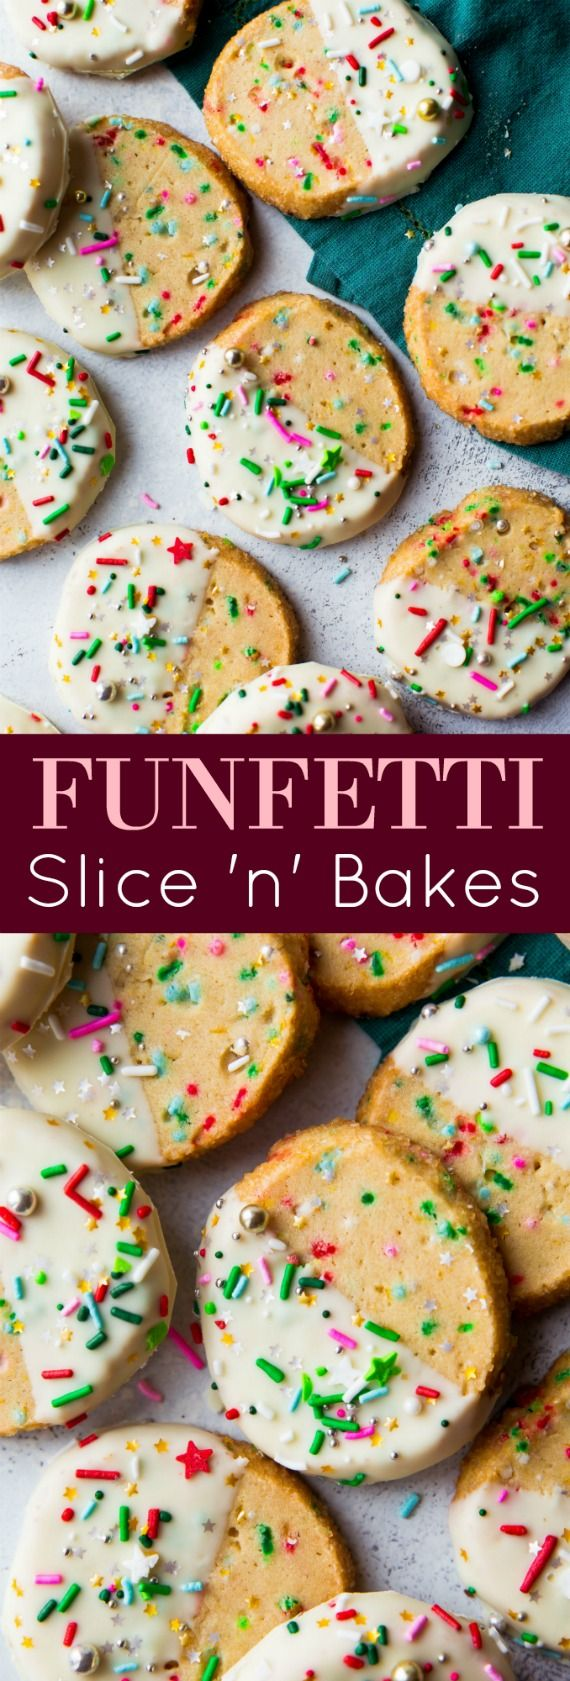 Easy make-ahead slice 'n' bake funfetti sprinkles cookies are prepped in only 1 bowl! Find this cookie recipe on sallysbakingaddiction.com